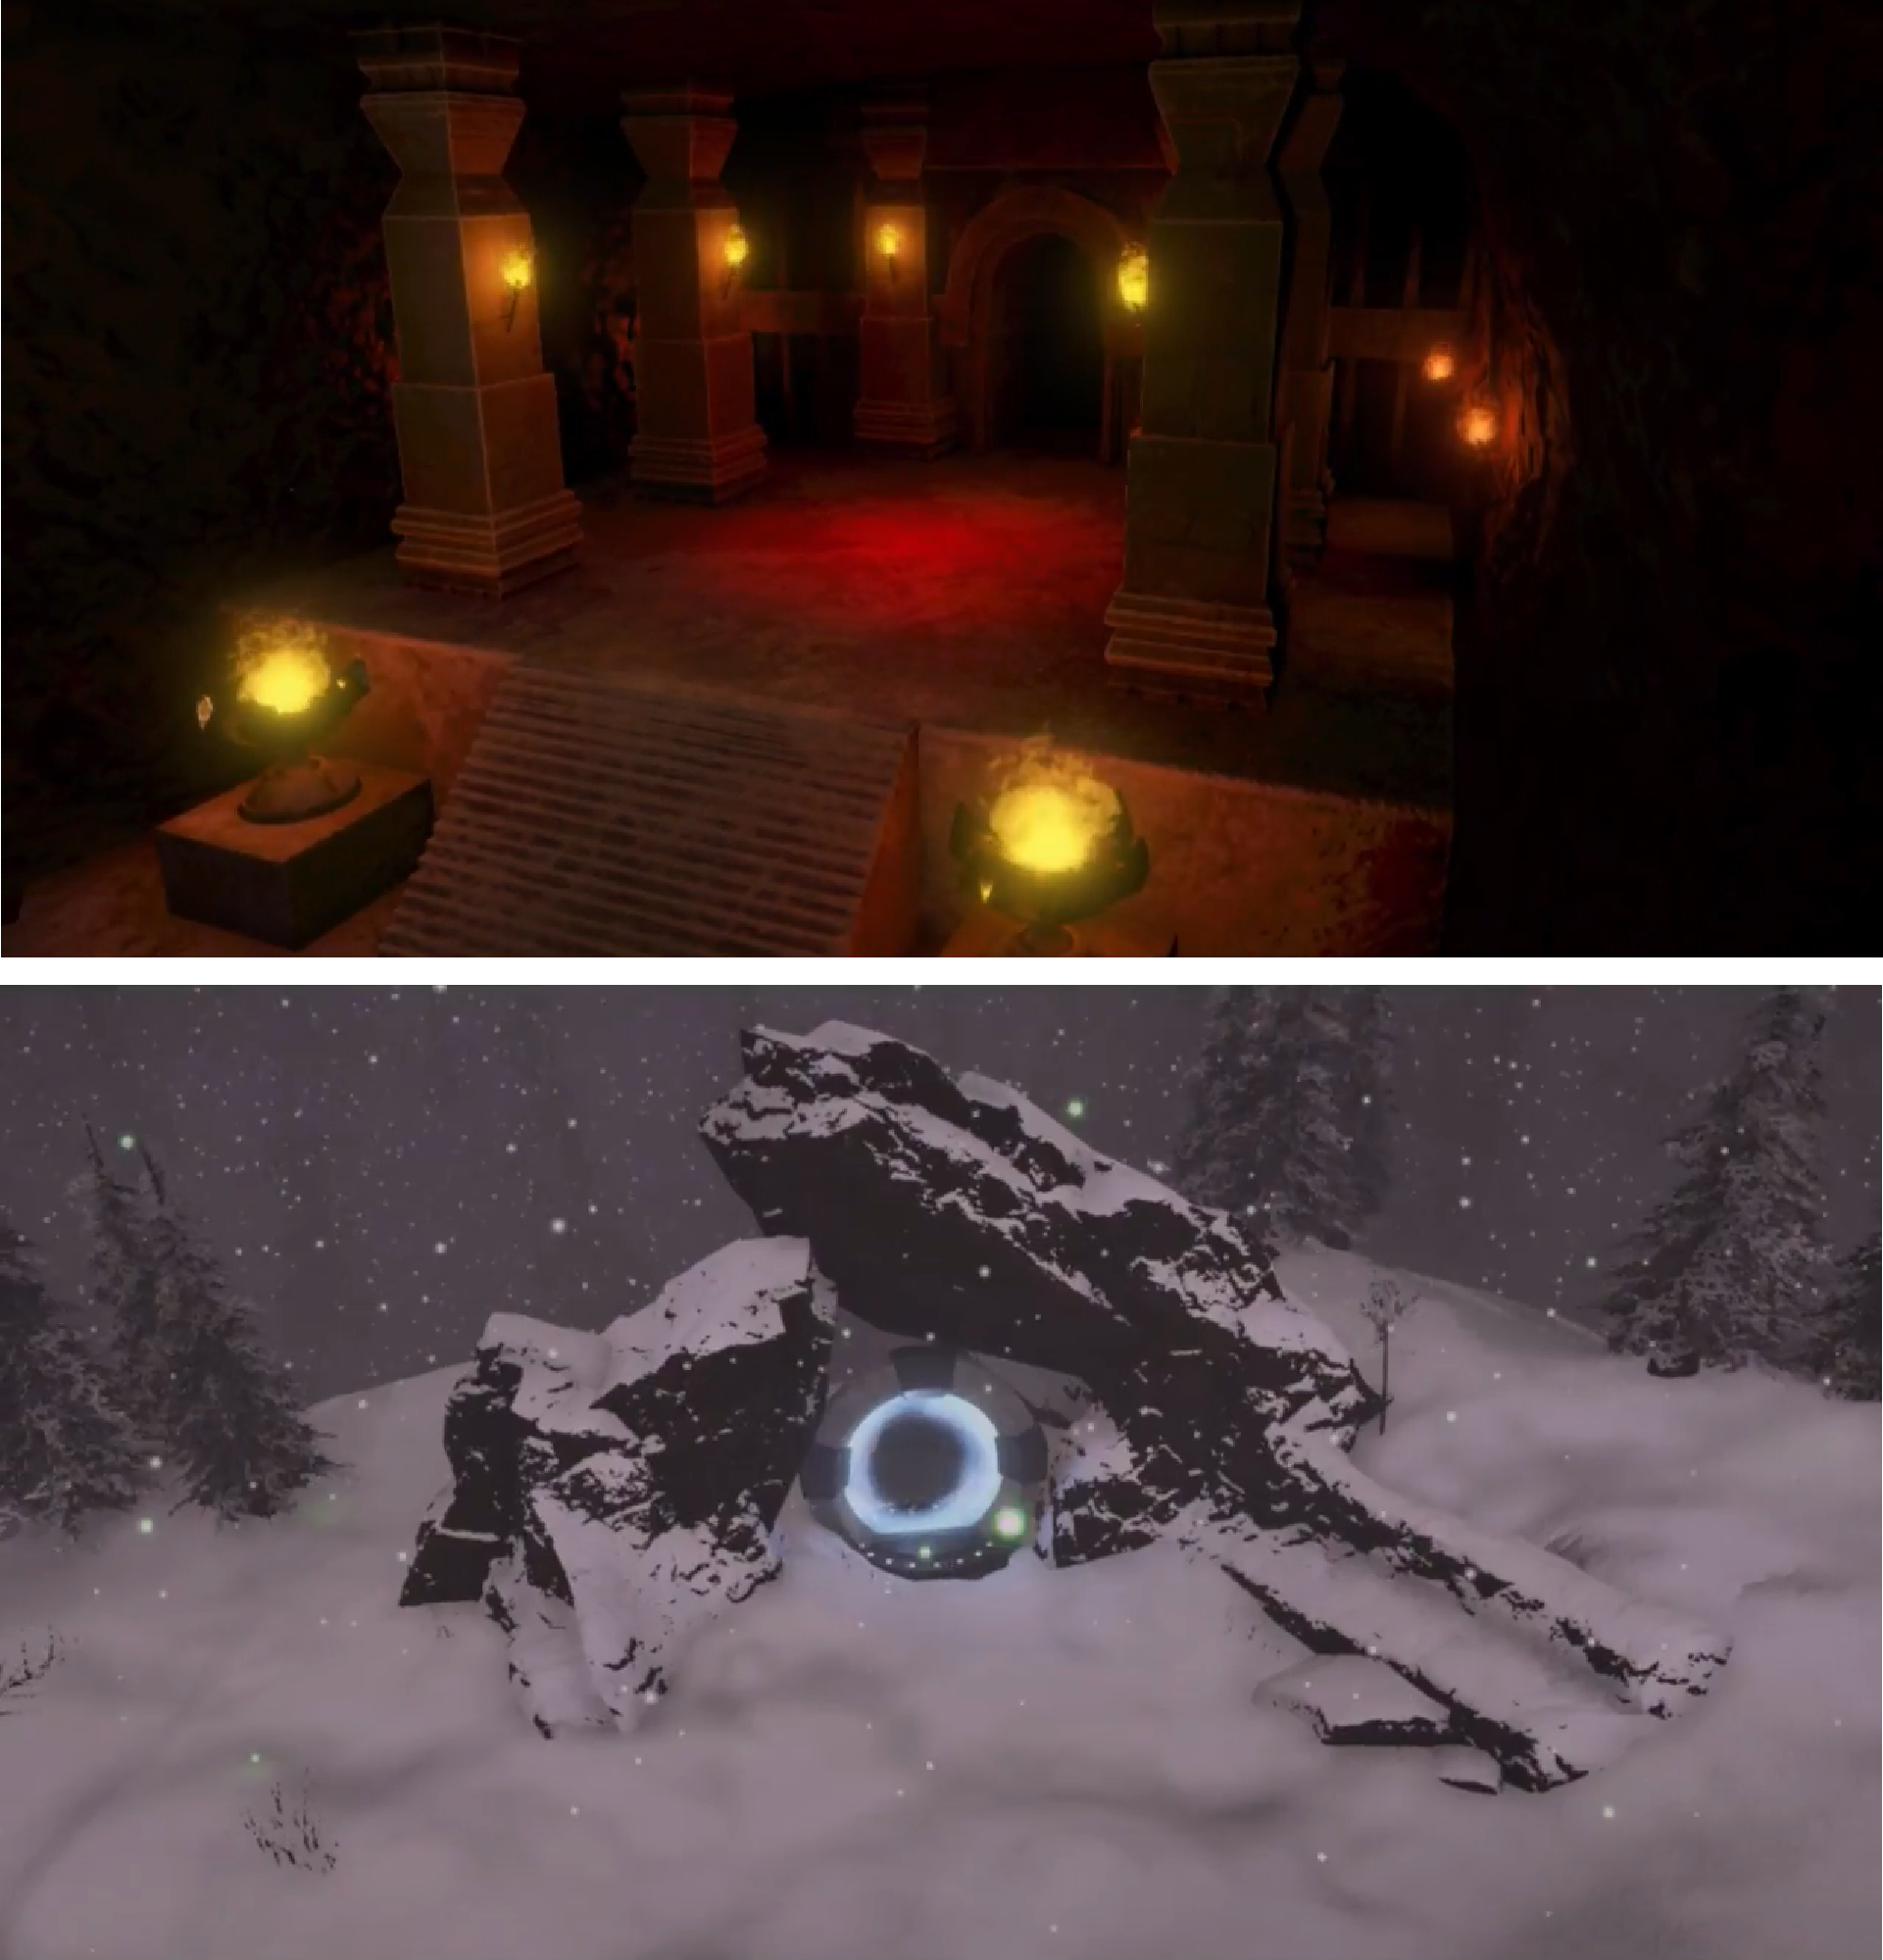 Underground Temple/Snowy Mountain Level Design